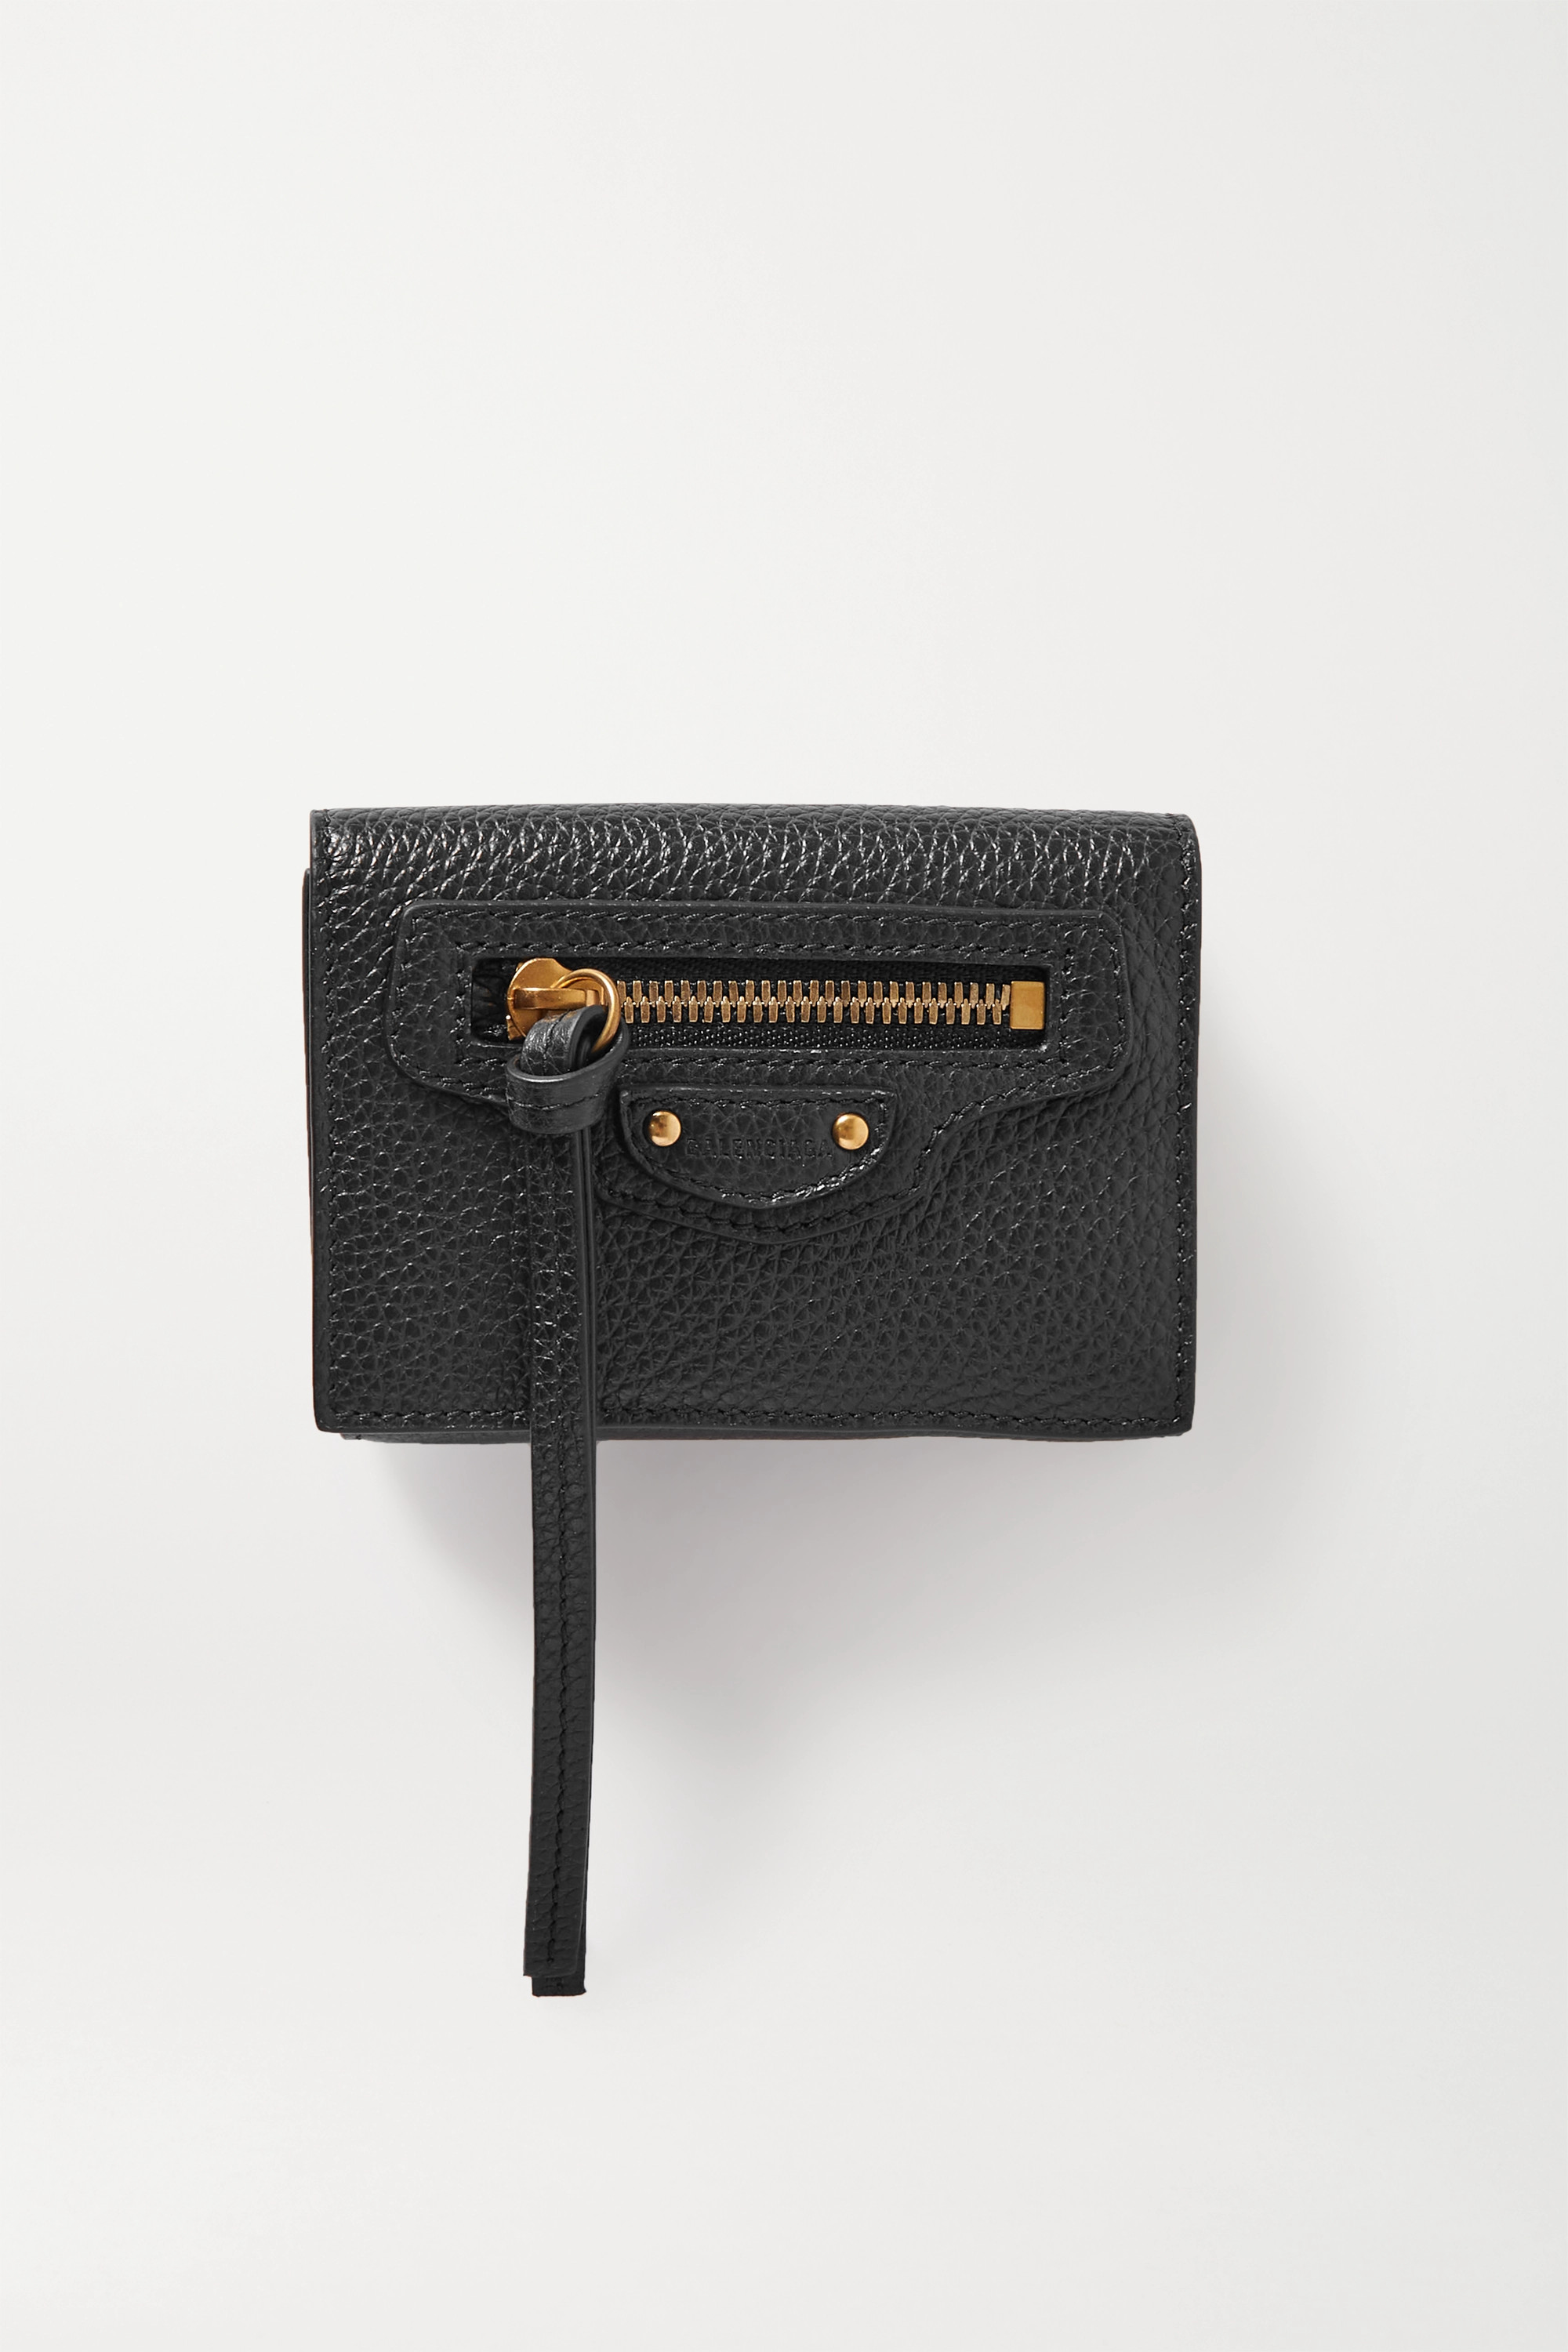 Balenciaga Neo Classic City textured-leather wallet